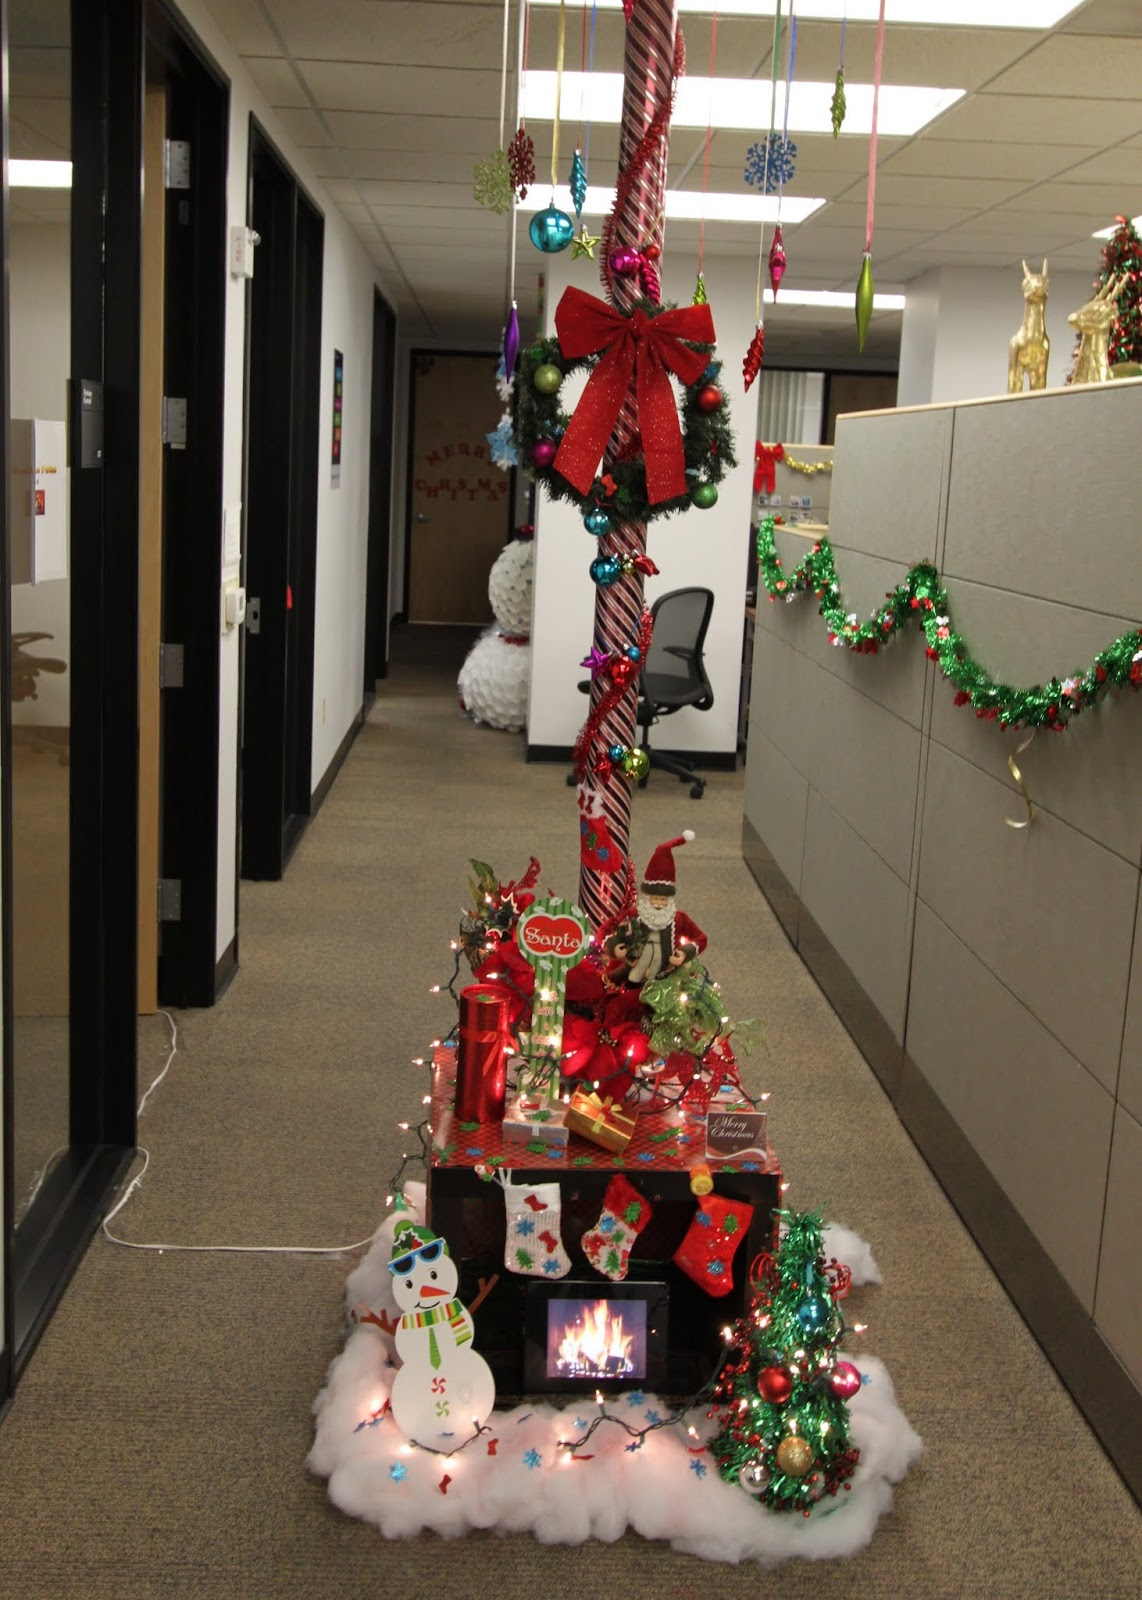 the office holiday pole decorating contest | mid-century modern remodel